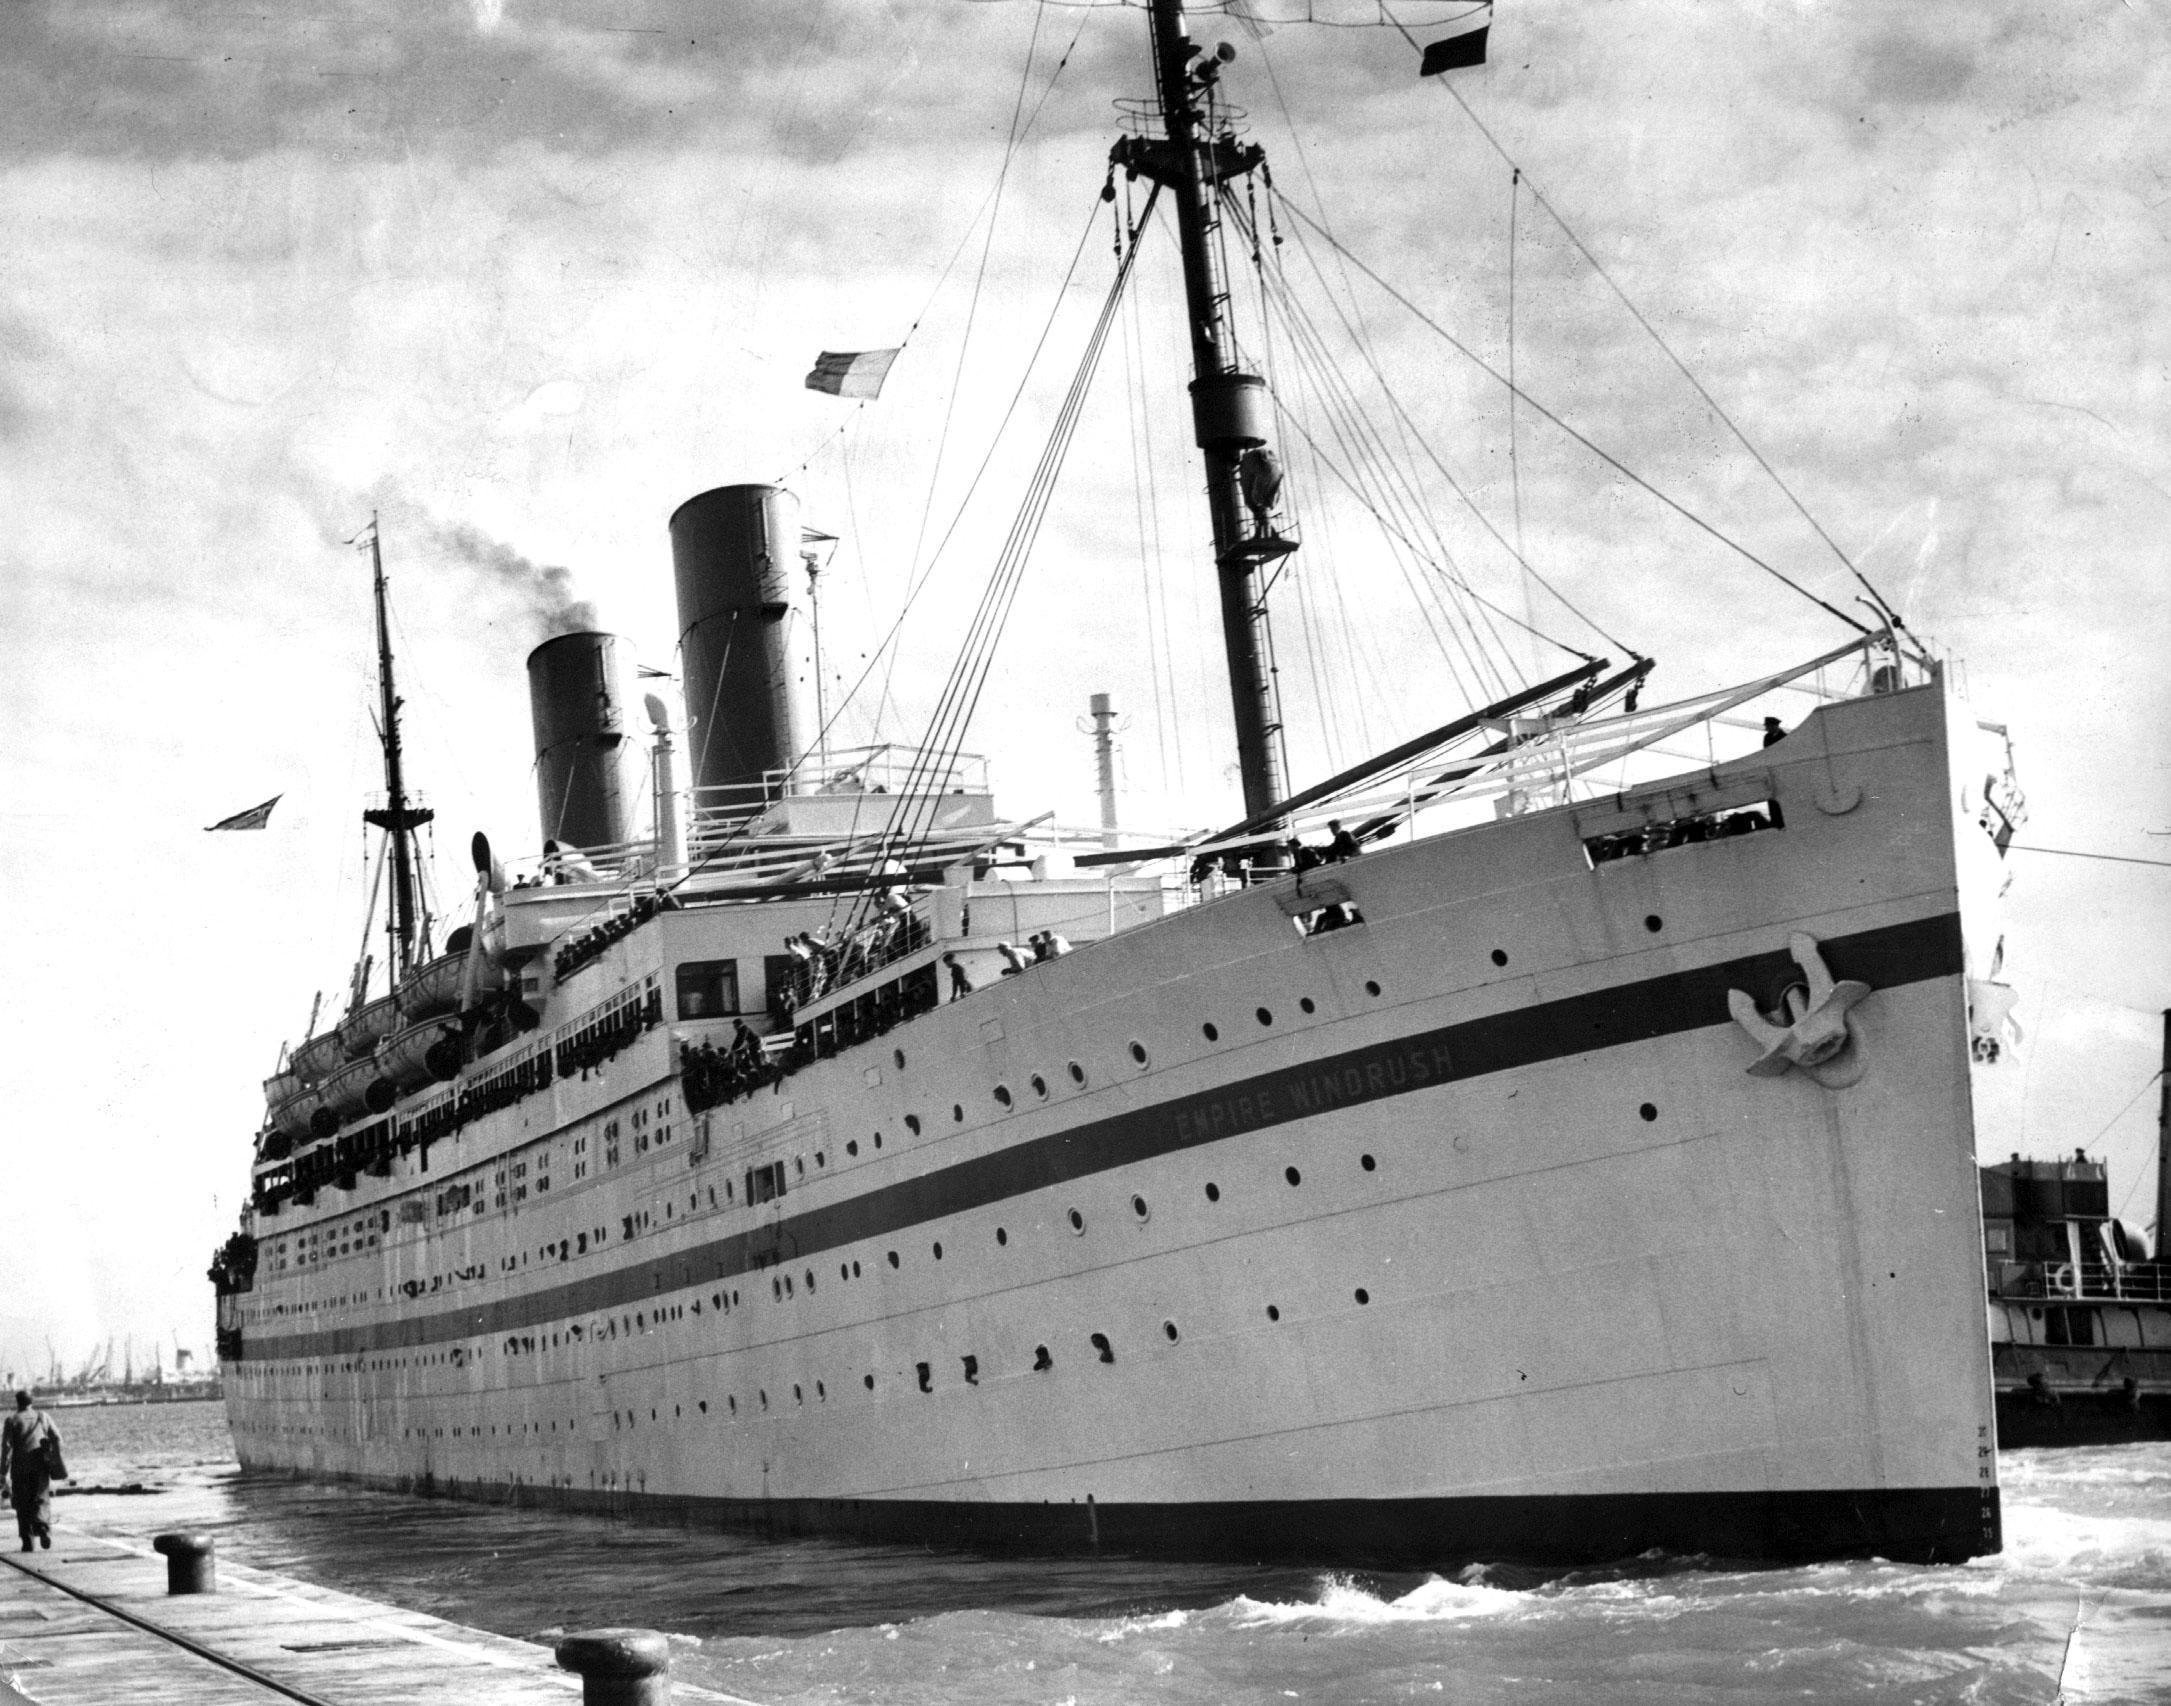 """File photo dated 28/03/54 of the Empire Windrush ship. Ministers have revealed 49 people deported to Commonwealth countries have not been contacted by the Windrush task force, leading MPs to claim the Home Office """"hasn't learned anything"""" from the scandal. PRESS ASSOCIATION Photo. Issue date: Monday December 3, 2018. See PA story POLITICS Windrush. Photo credit should read: PA/PA Wire"""